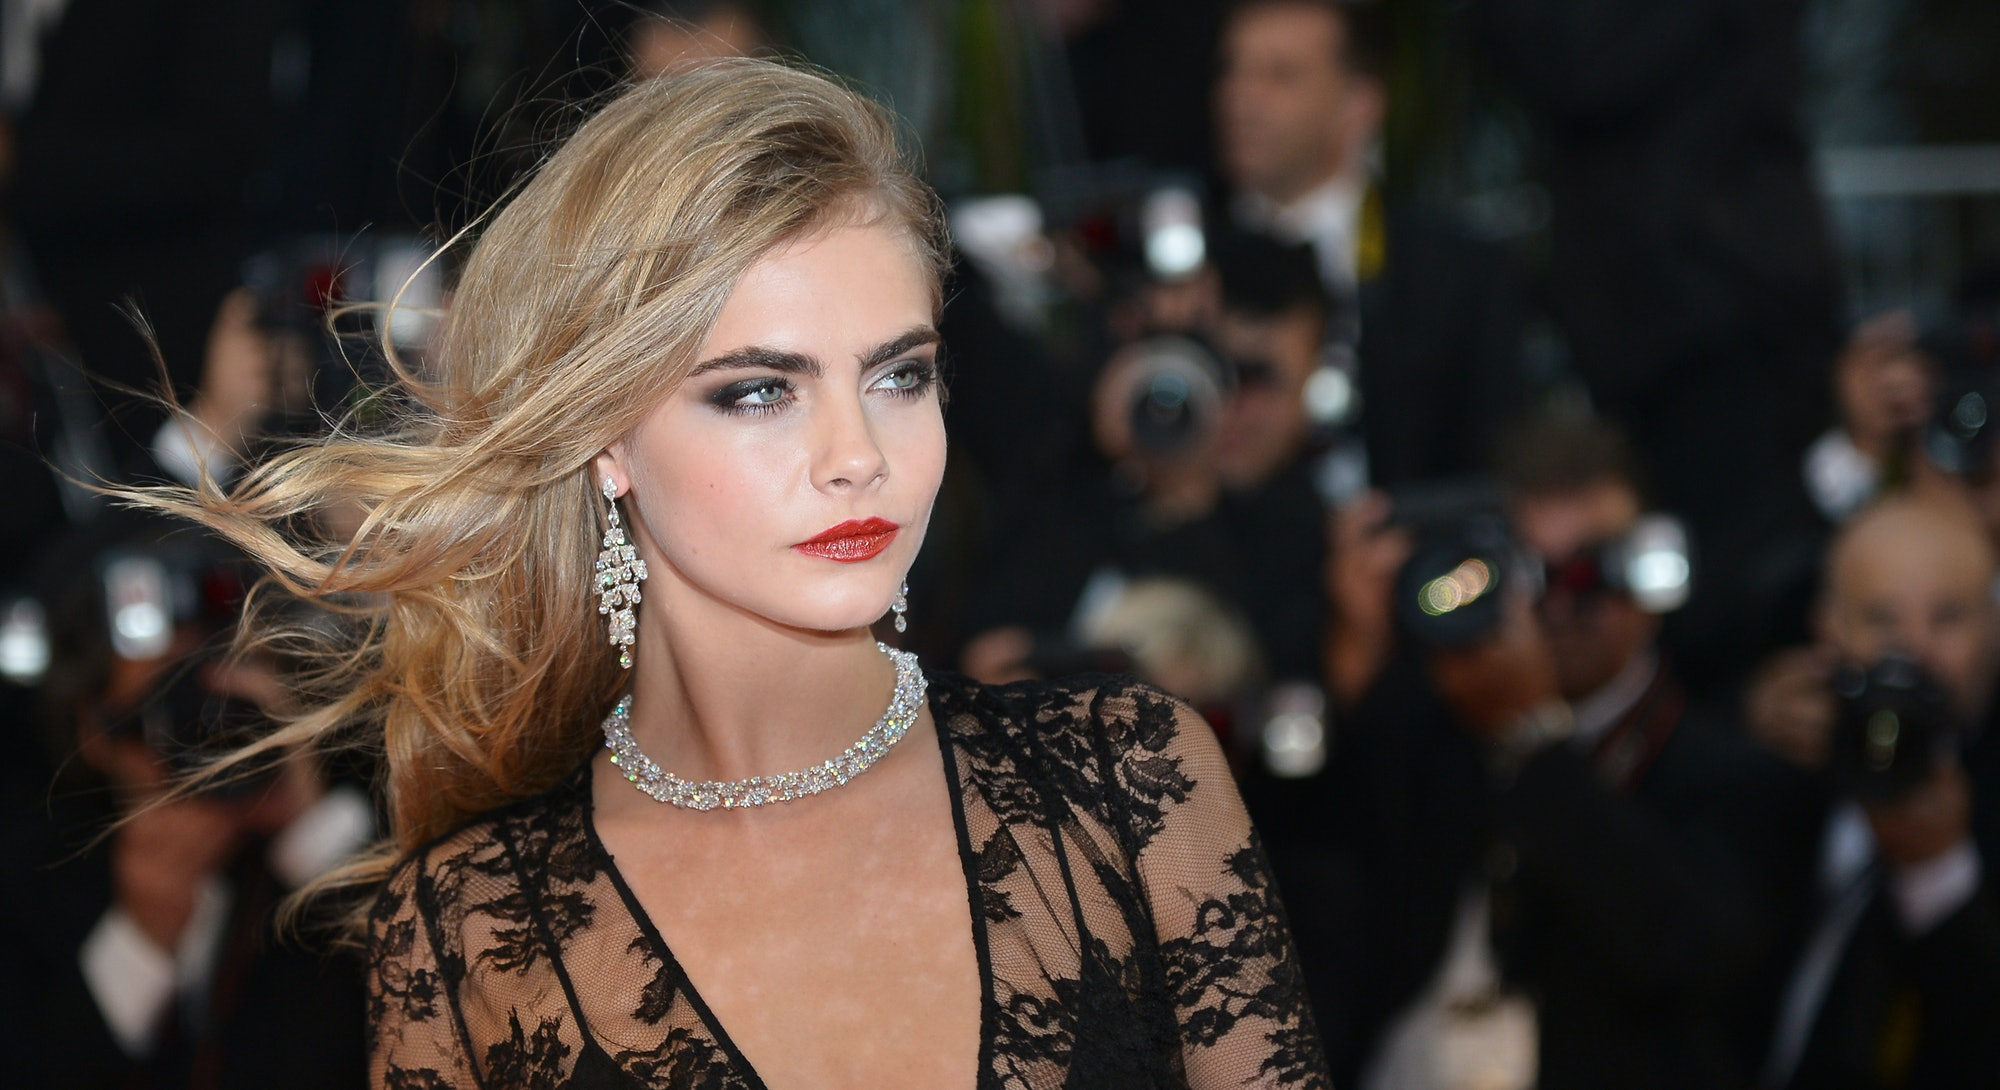 Cara Delevingne at the 2013 Cannes Film Festival.